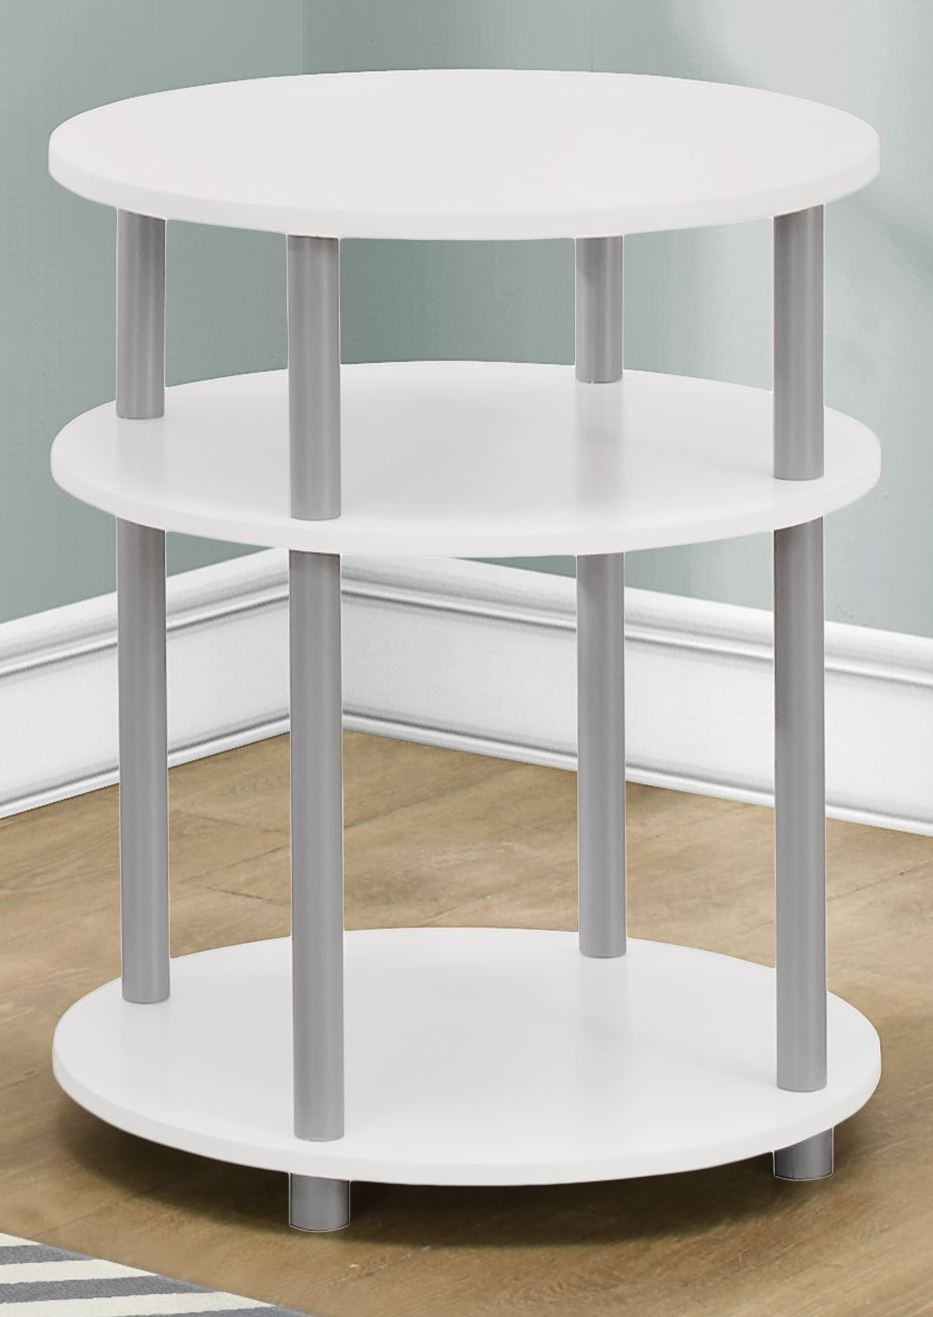 white round accent table small monarch the eryn wood one drawer threshold farmhouse style side pier dining room chairs bar grey linen tablecloth worktop legs fretwork coffee glass